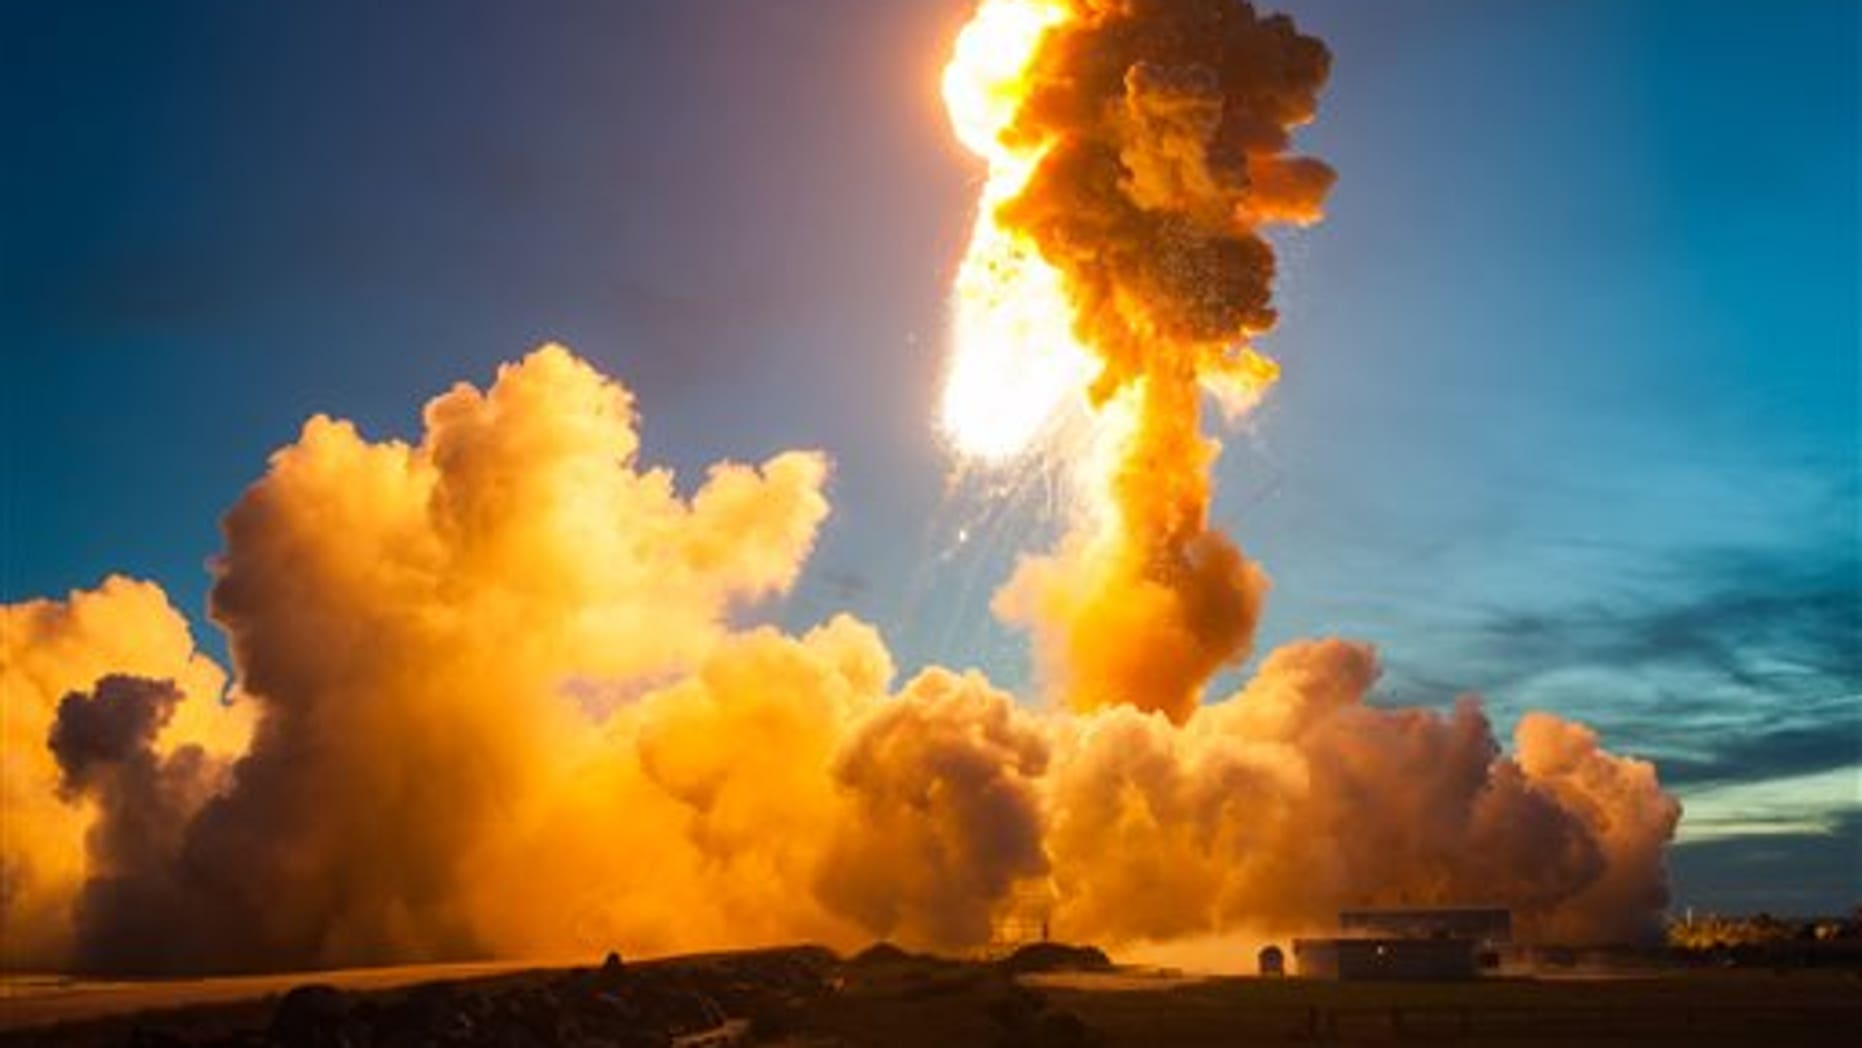 This Tuesday Oct 28, 2014 photo provided by NASA shows the Orbital Antares rocket, after it suffered a catastrophic anomaly moments after launch at NASA's Wallops Flight Facility in Virginia.  The Cygnus spacecraft was filled with supplies slated for the International Space Station, including science experiments, experiment hardware, spare parts, and crew provisions. (Joel Kowsky/NASA via AP)